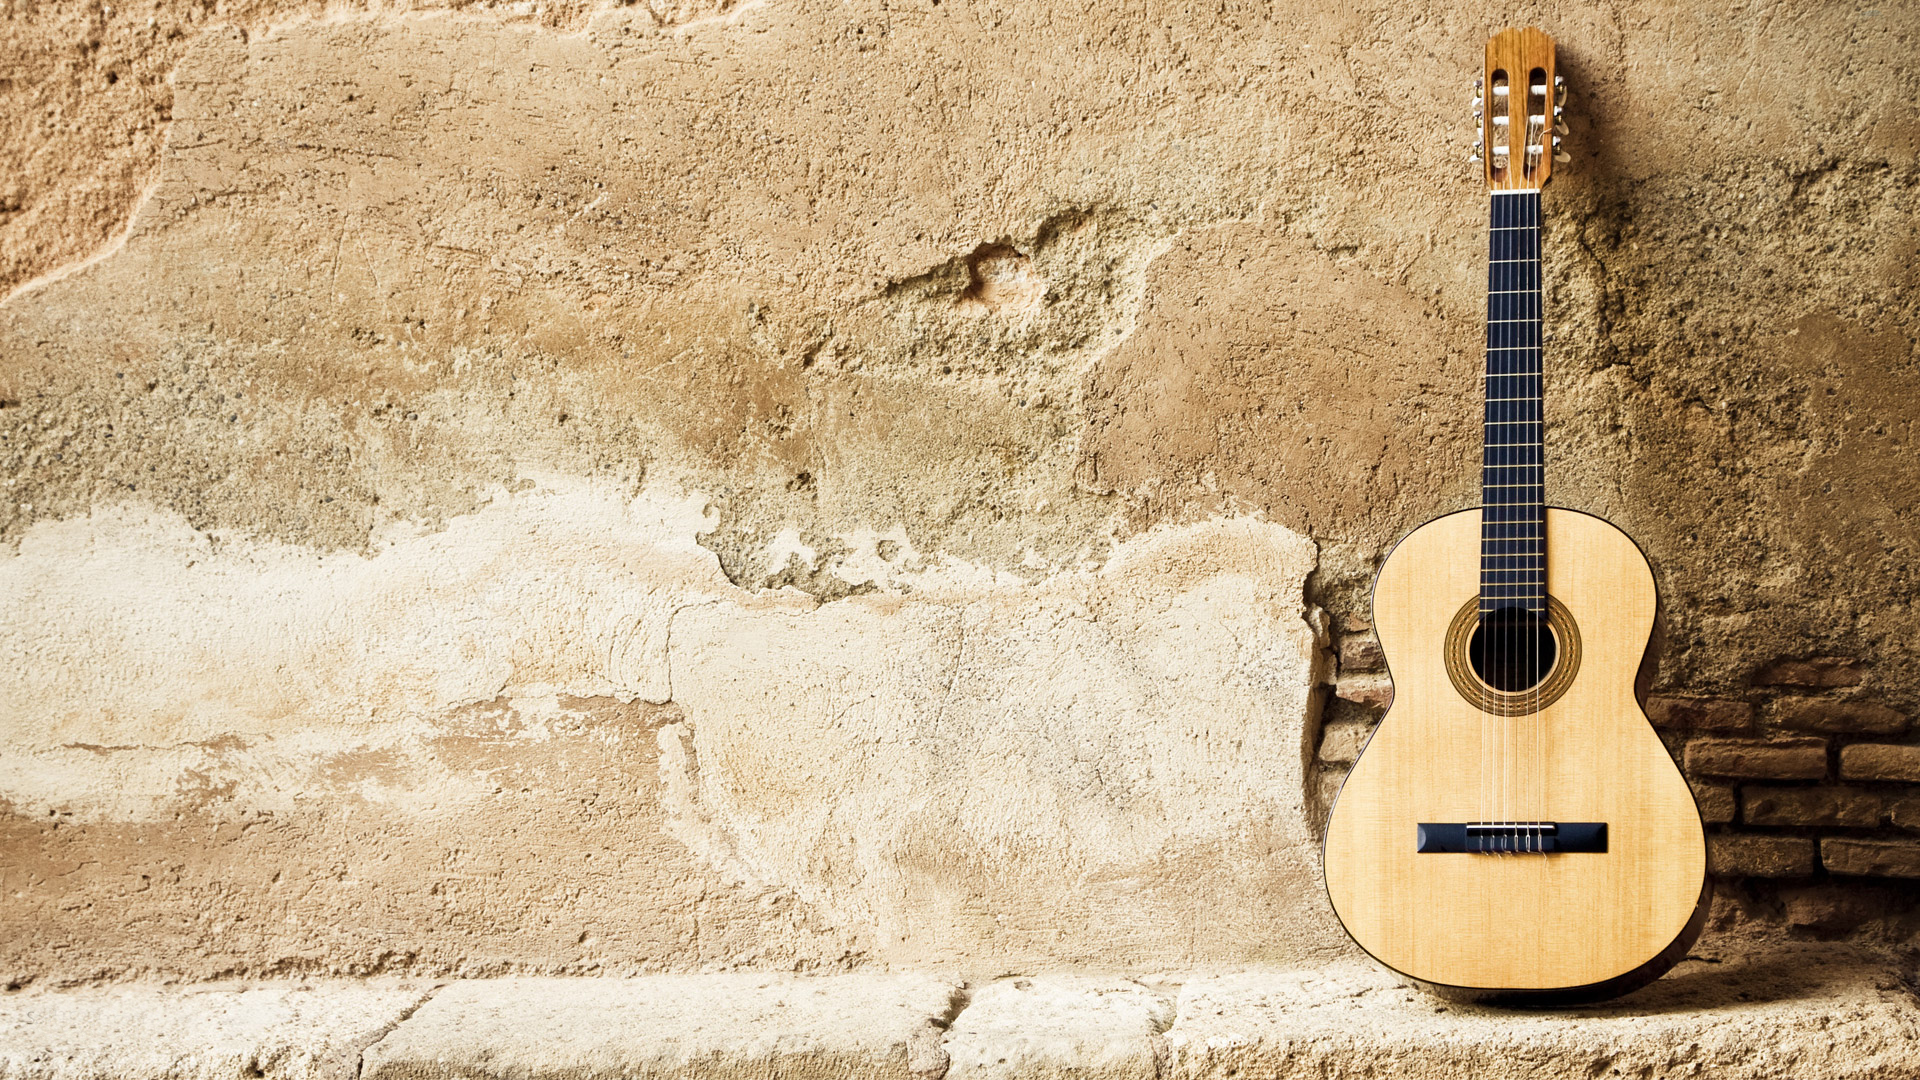 guitar-wallpaper-45312-46523-hd-wallpapers